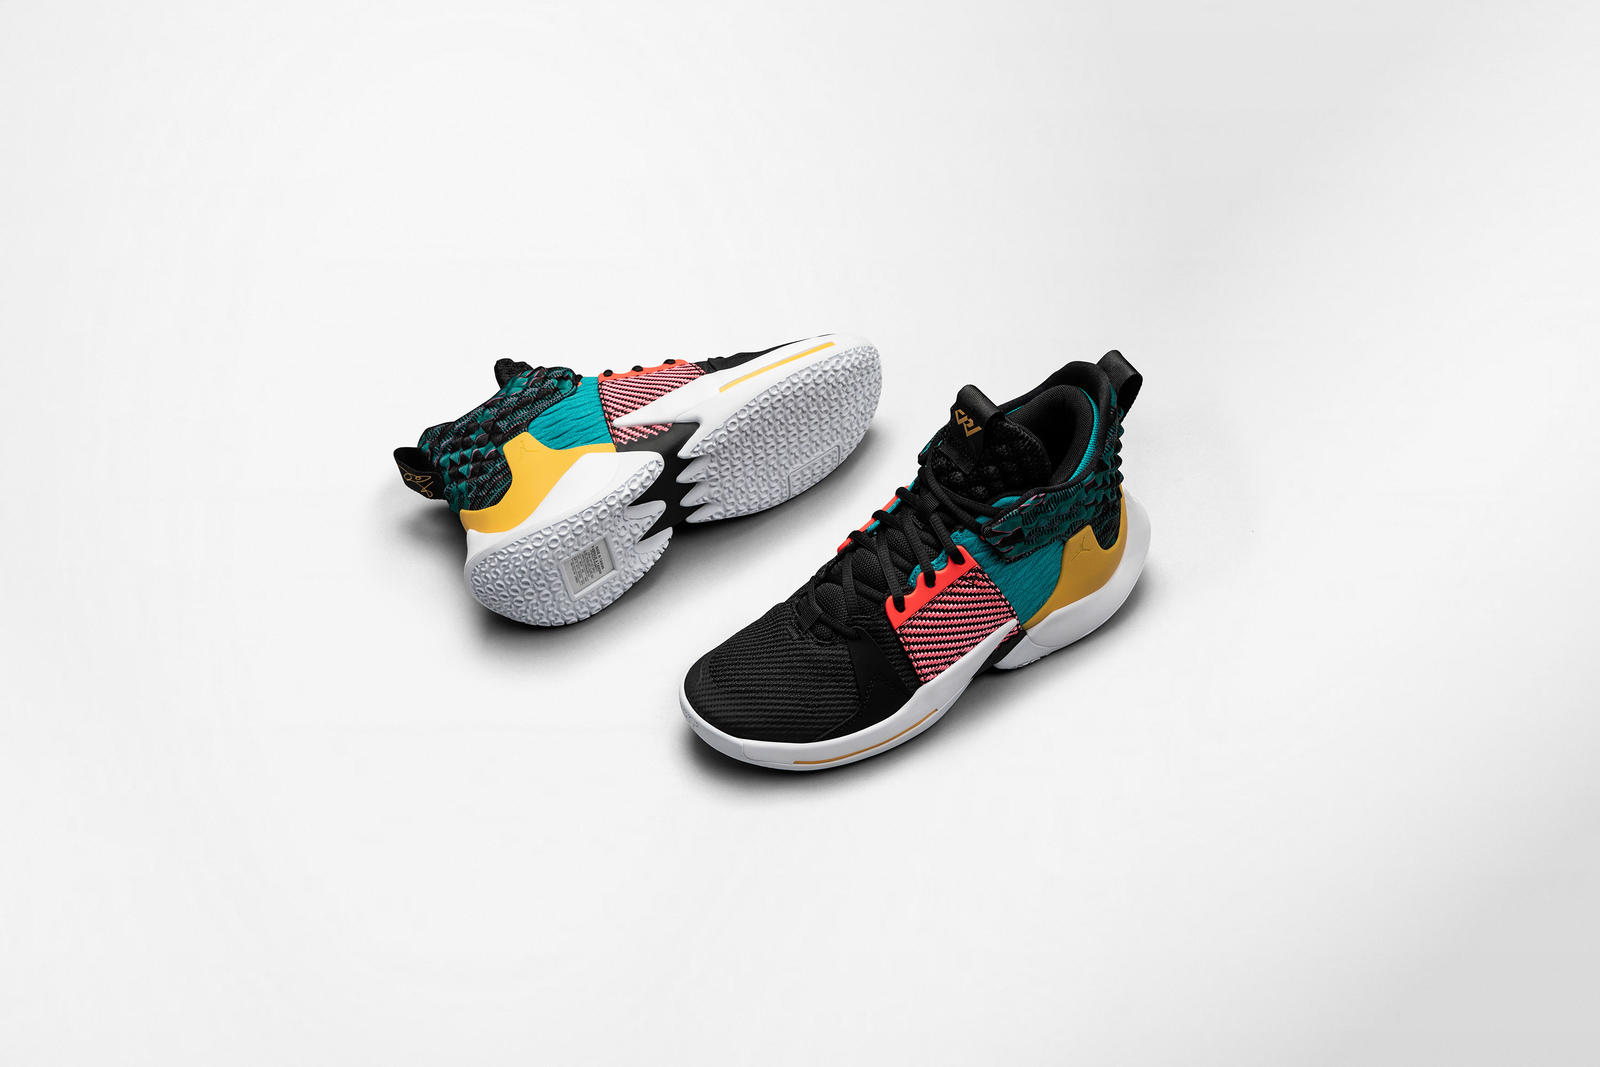 Nike Unveils 2019 Black History Month Collection: Kyries, LeBrons & More